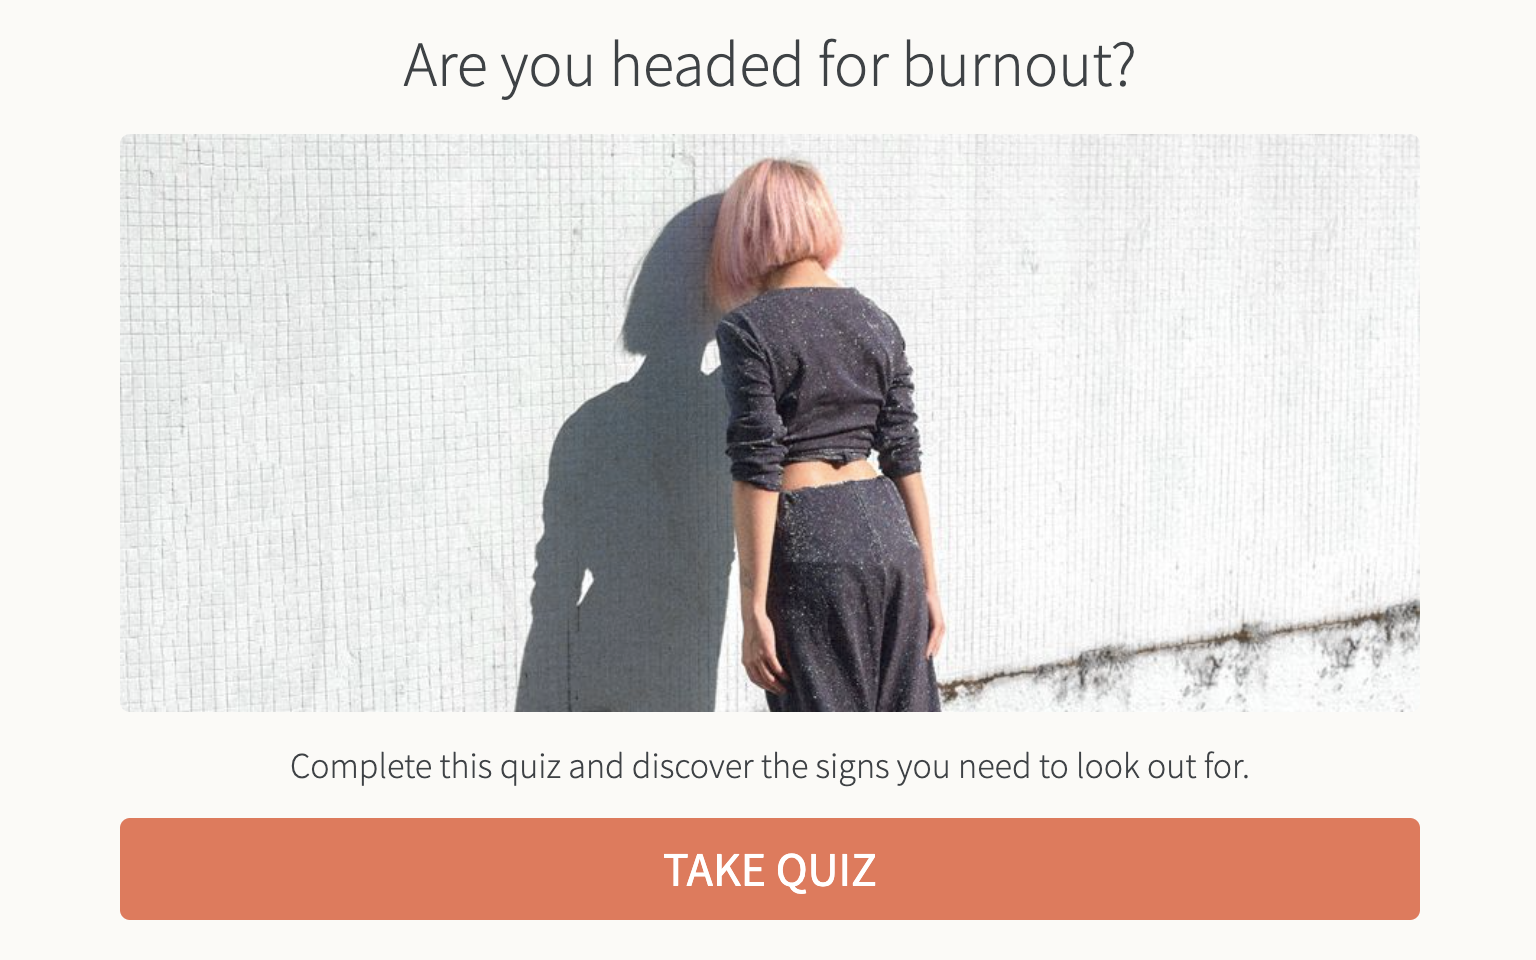 Are you headed for burnout quiz cover